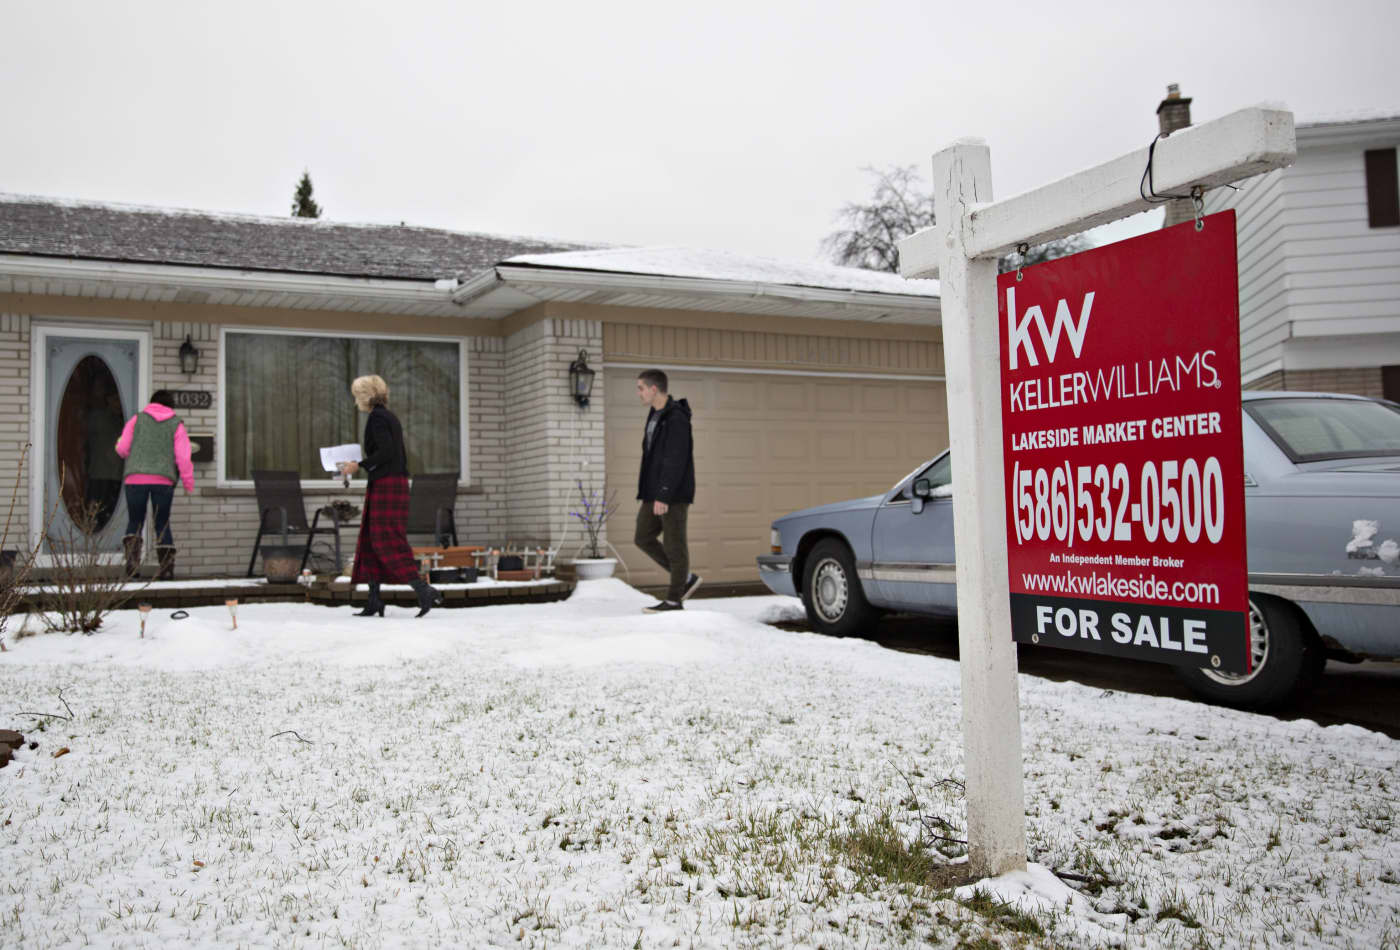 Weekly mortgage applications pull back slightly after strong start to 2020